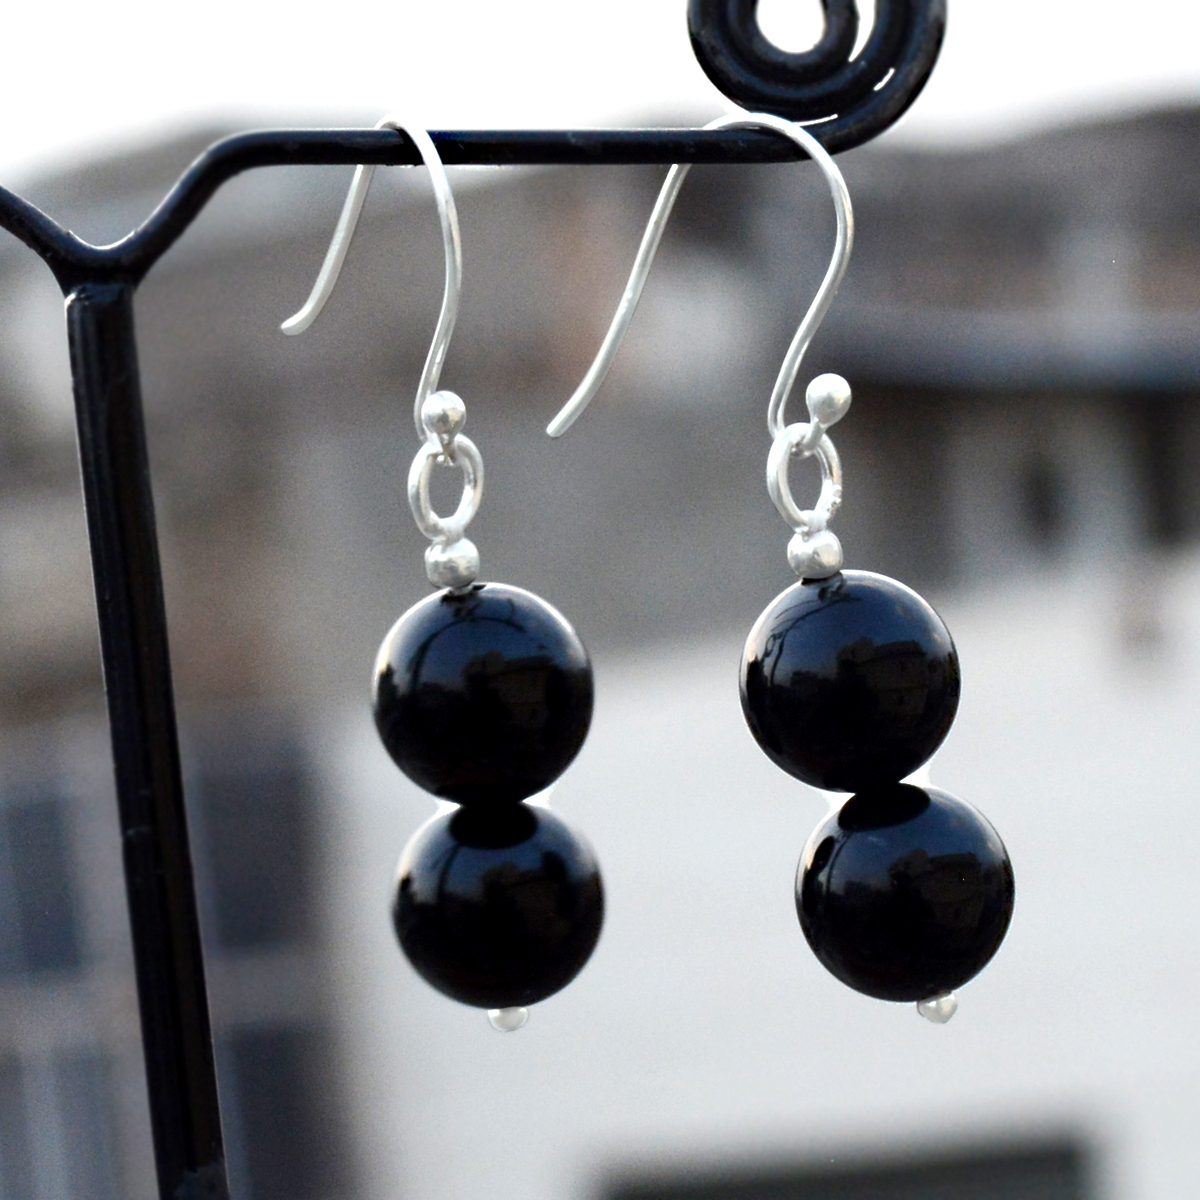 Handmade Jewelry Manufacturer 10mm Round 2 Stone Black Onyx, 925 Sterling Silver, Dangle Earring Jaipur Rajasthan India